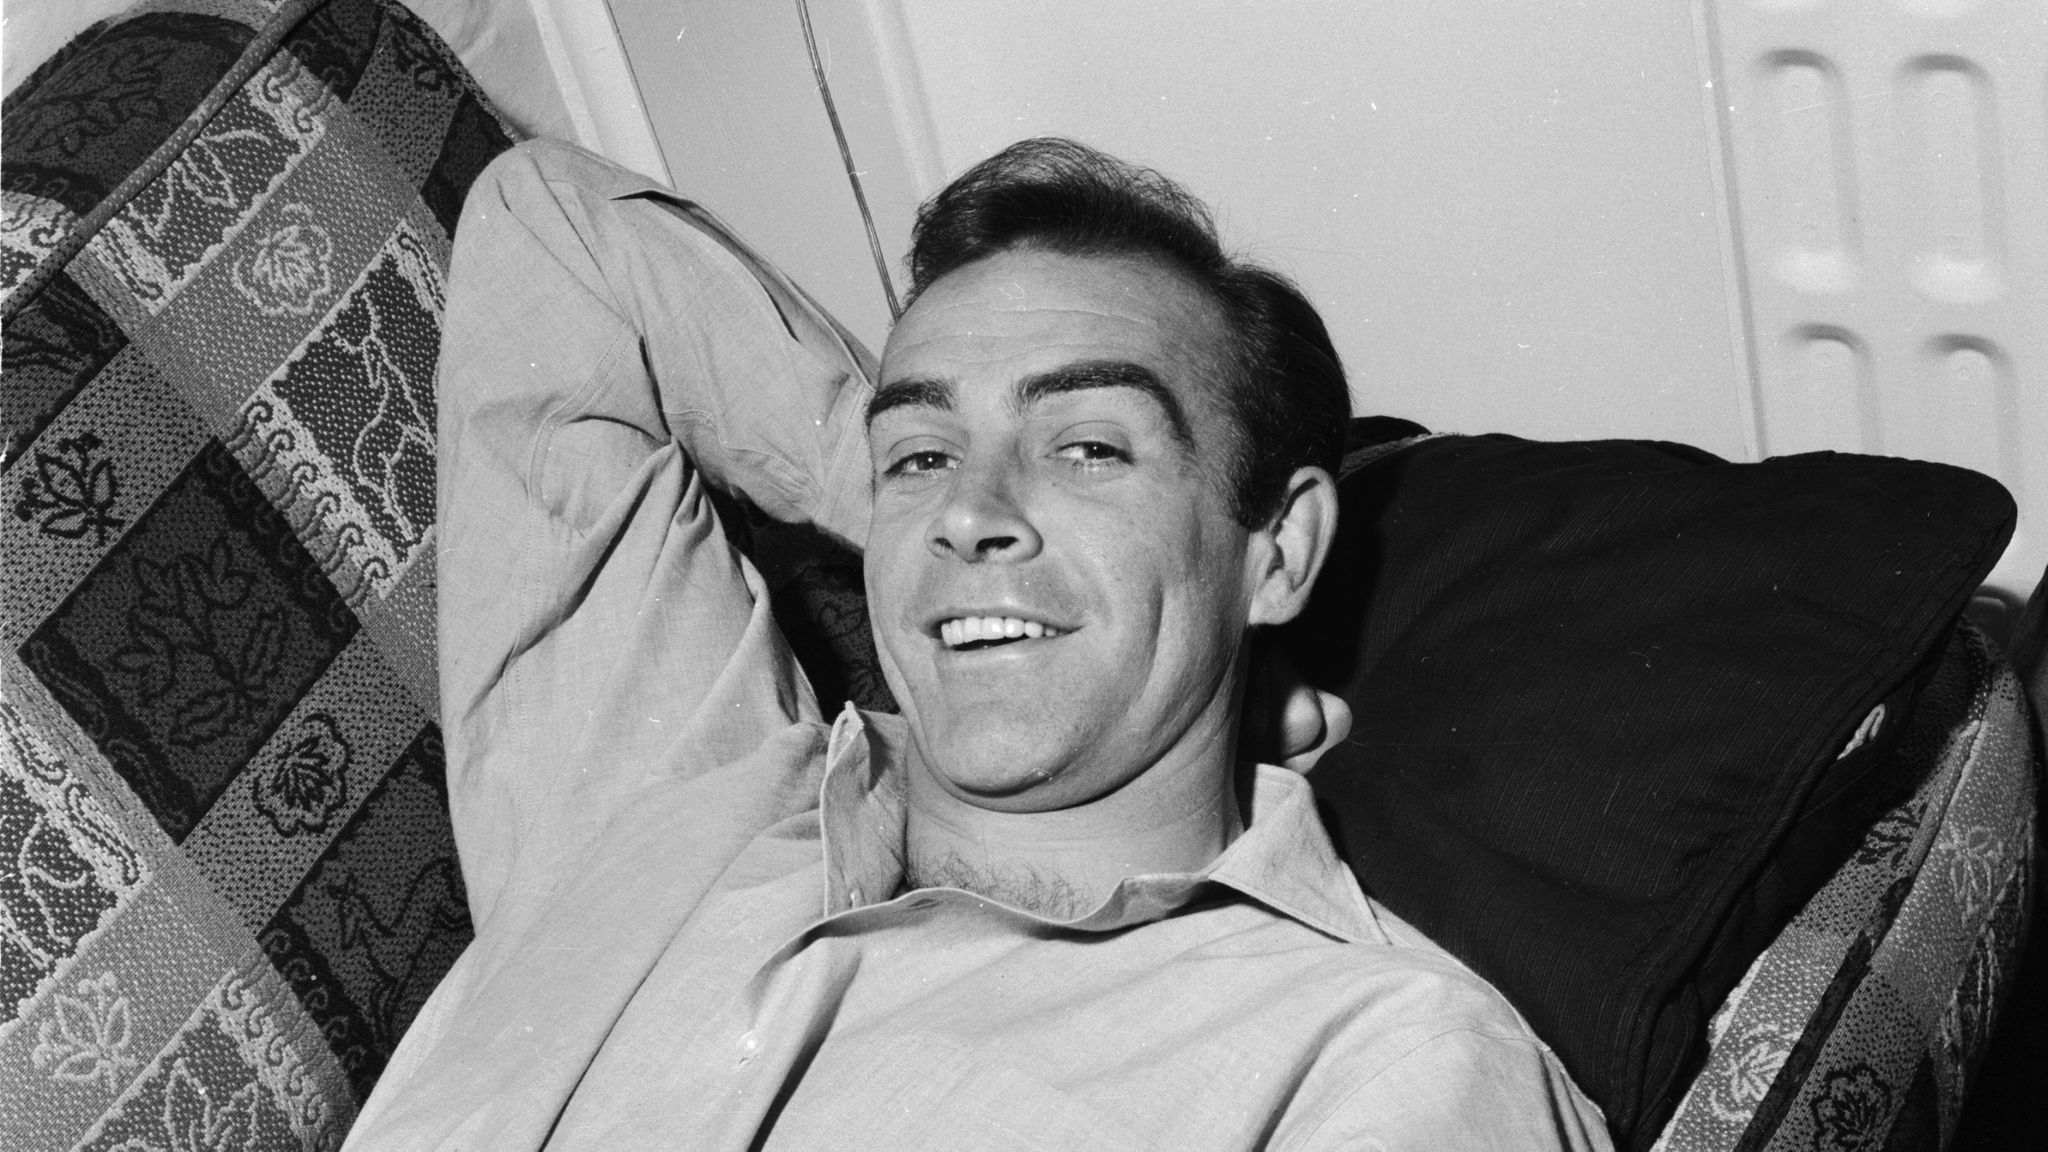 31st August 1962: Scottish actor Sean Connery, the new face of superspy James Bond, relaxes in his basement flat in London's NW8. (Photo by Chris Ware/Keystone Features/Getty Images)